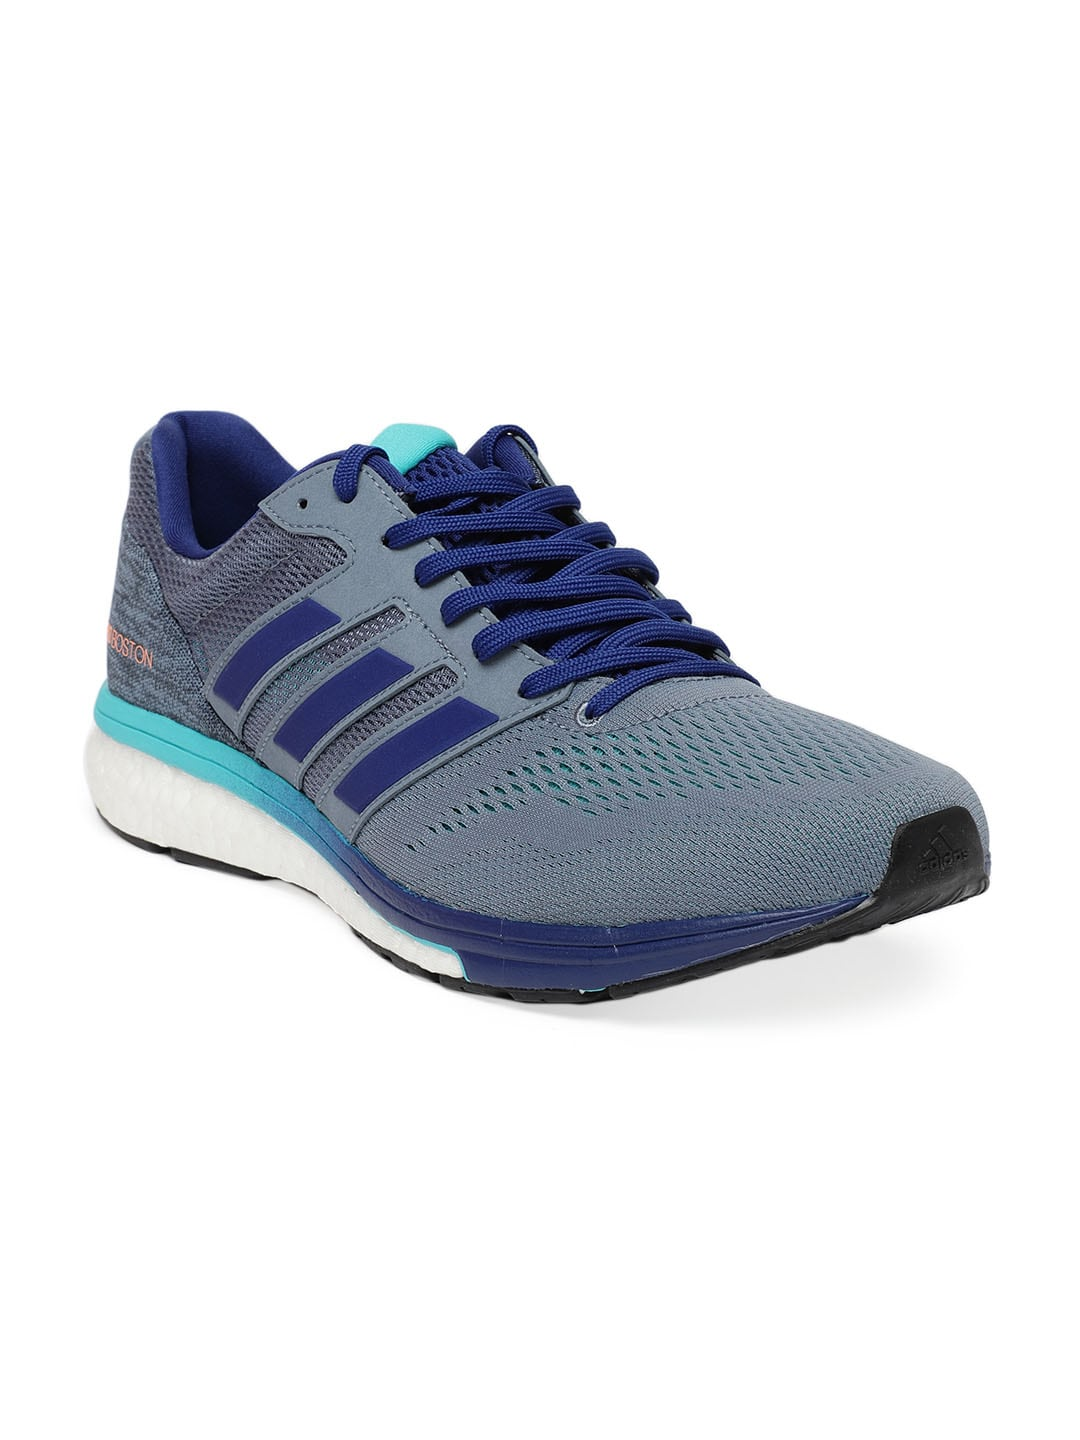 Adidas Adizero Shoes - Buy Adidas Adizero Shoes online in In